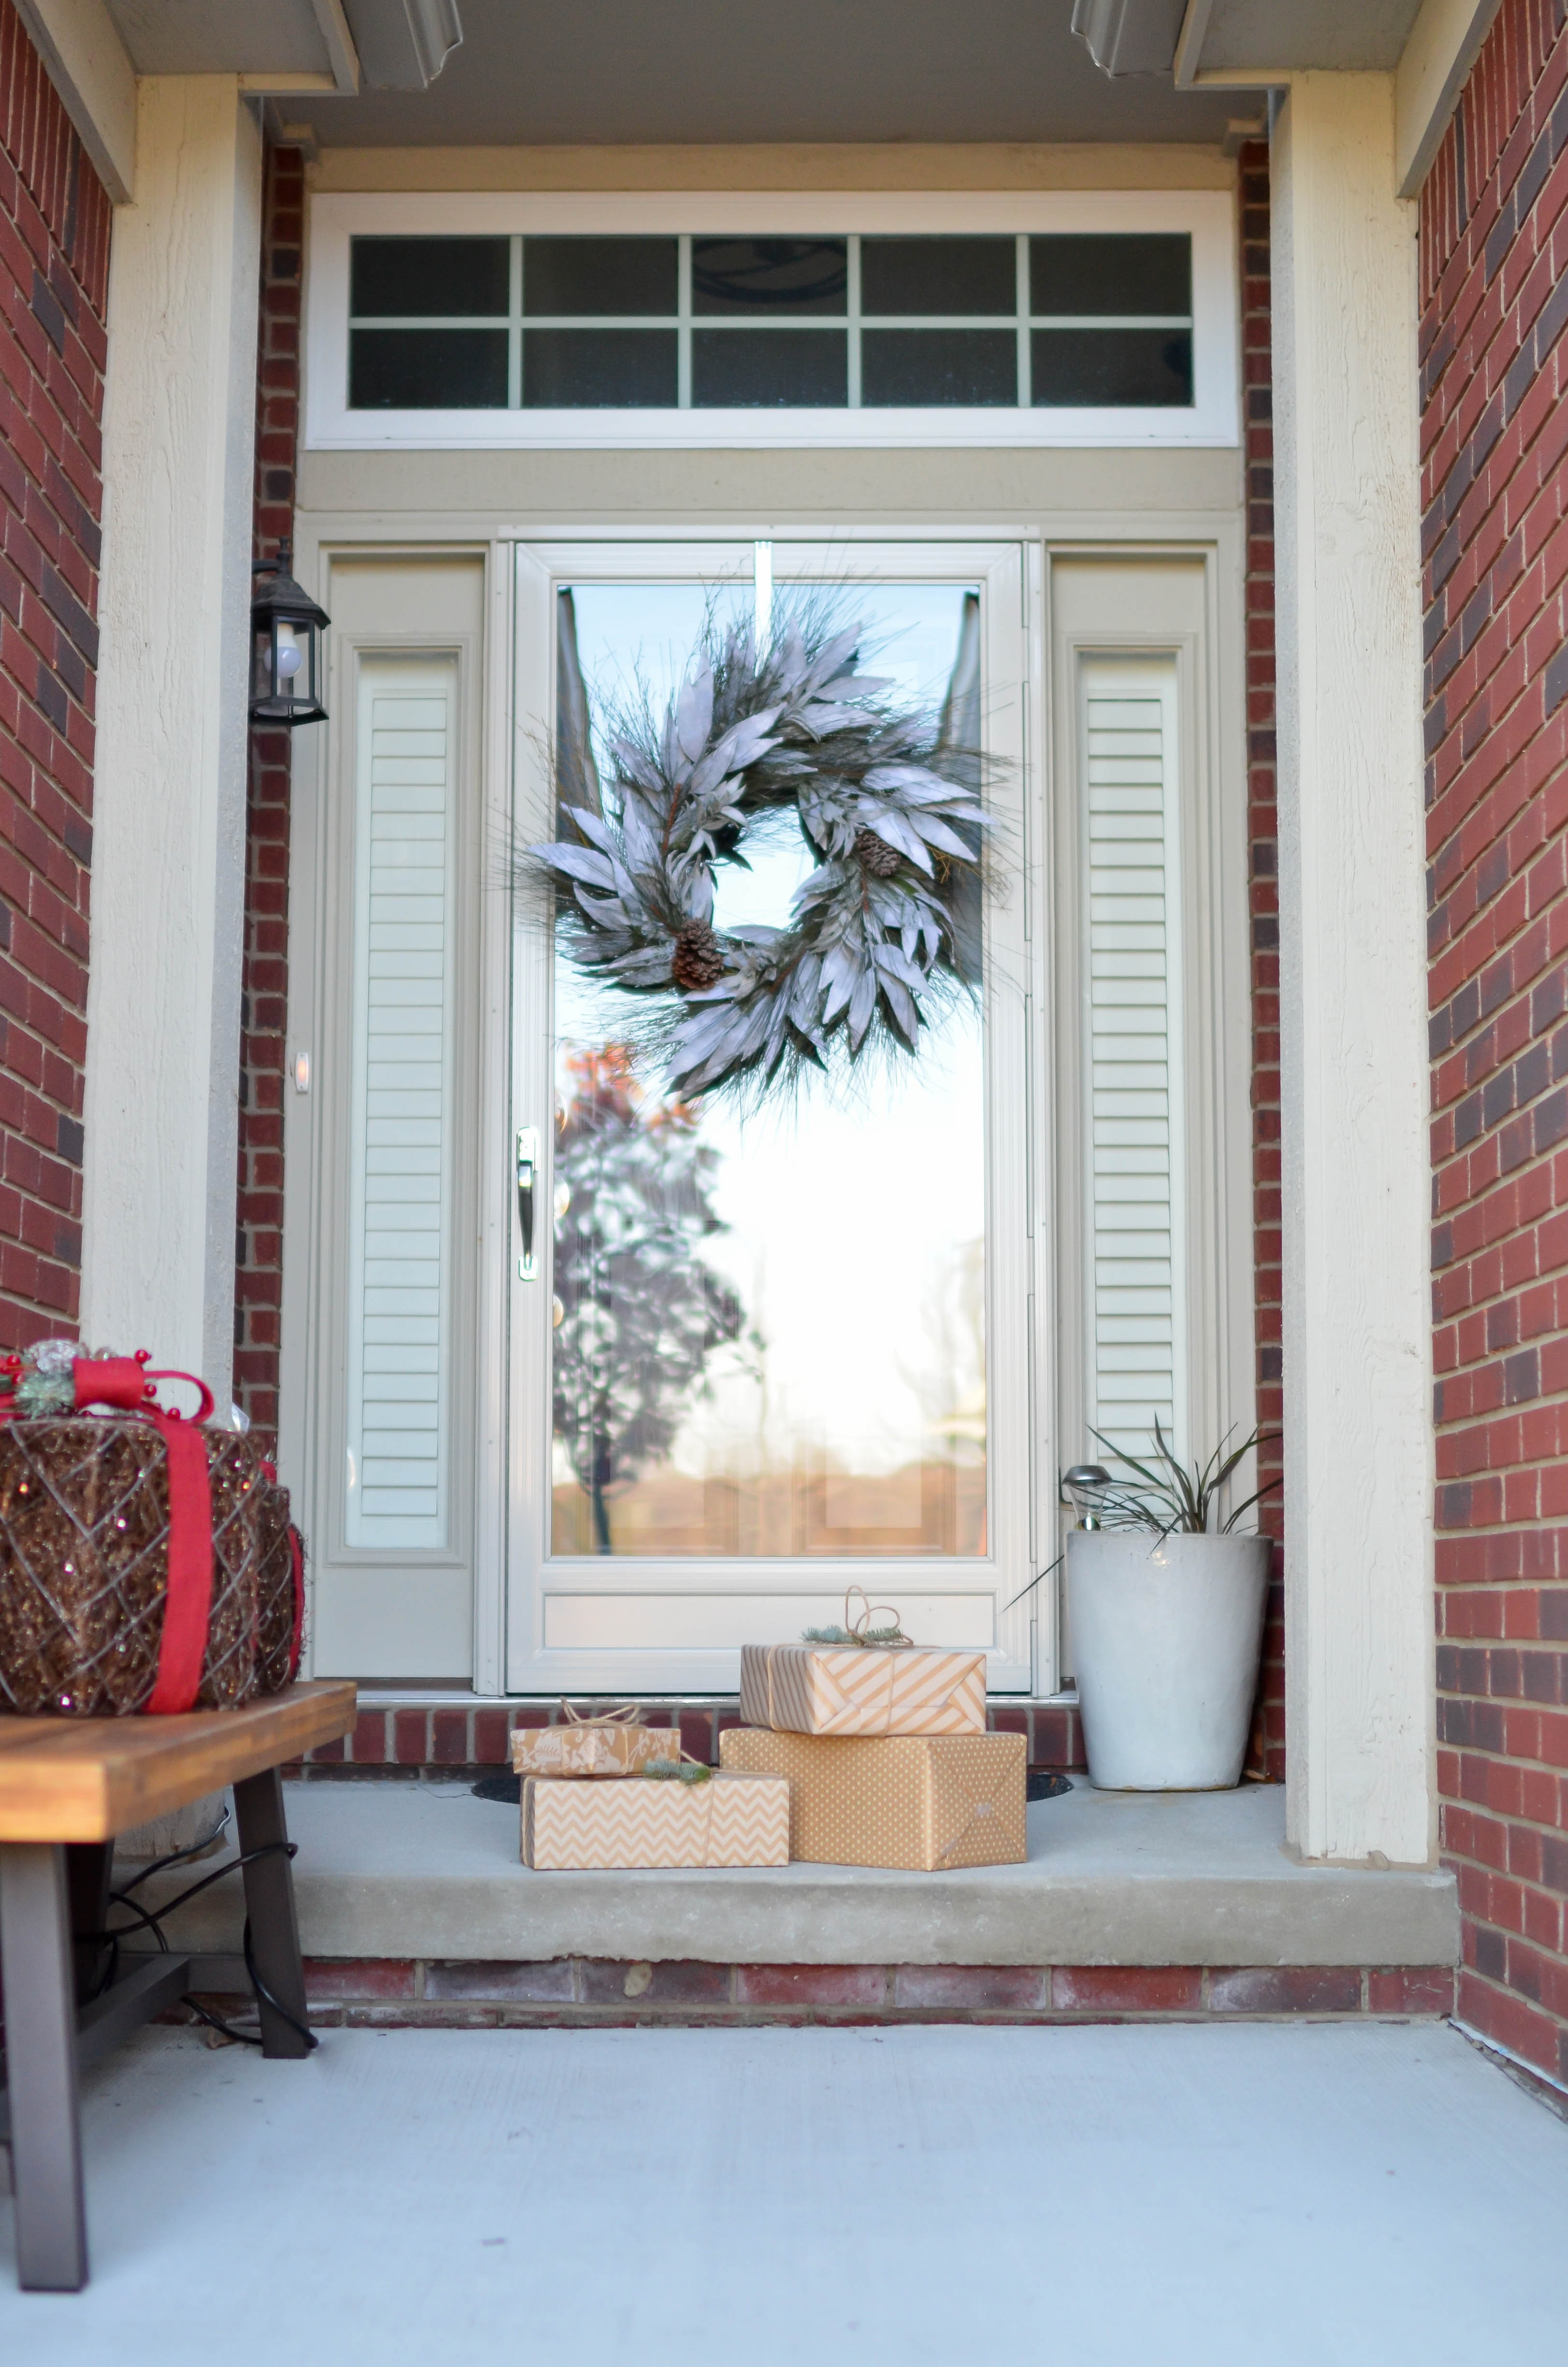 Home selling during the holidays